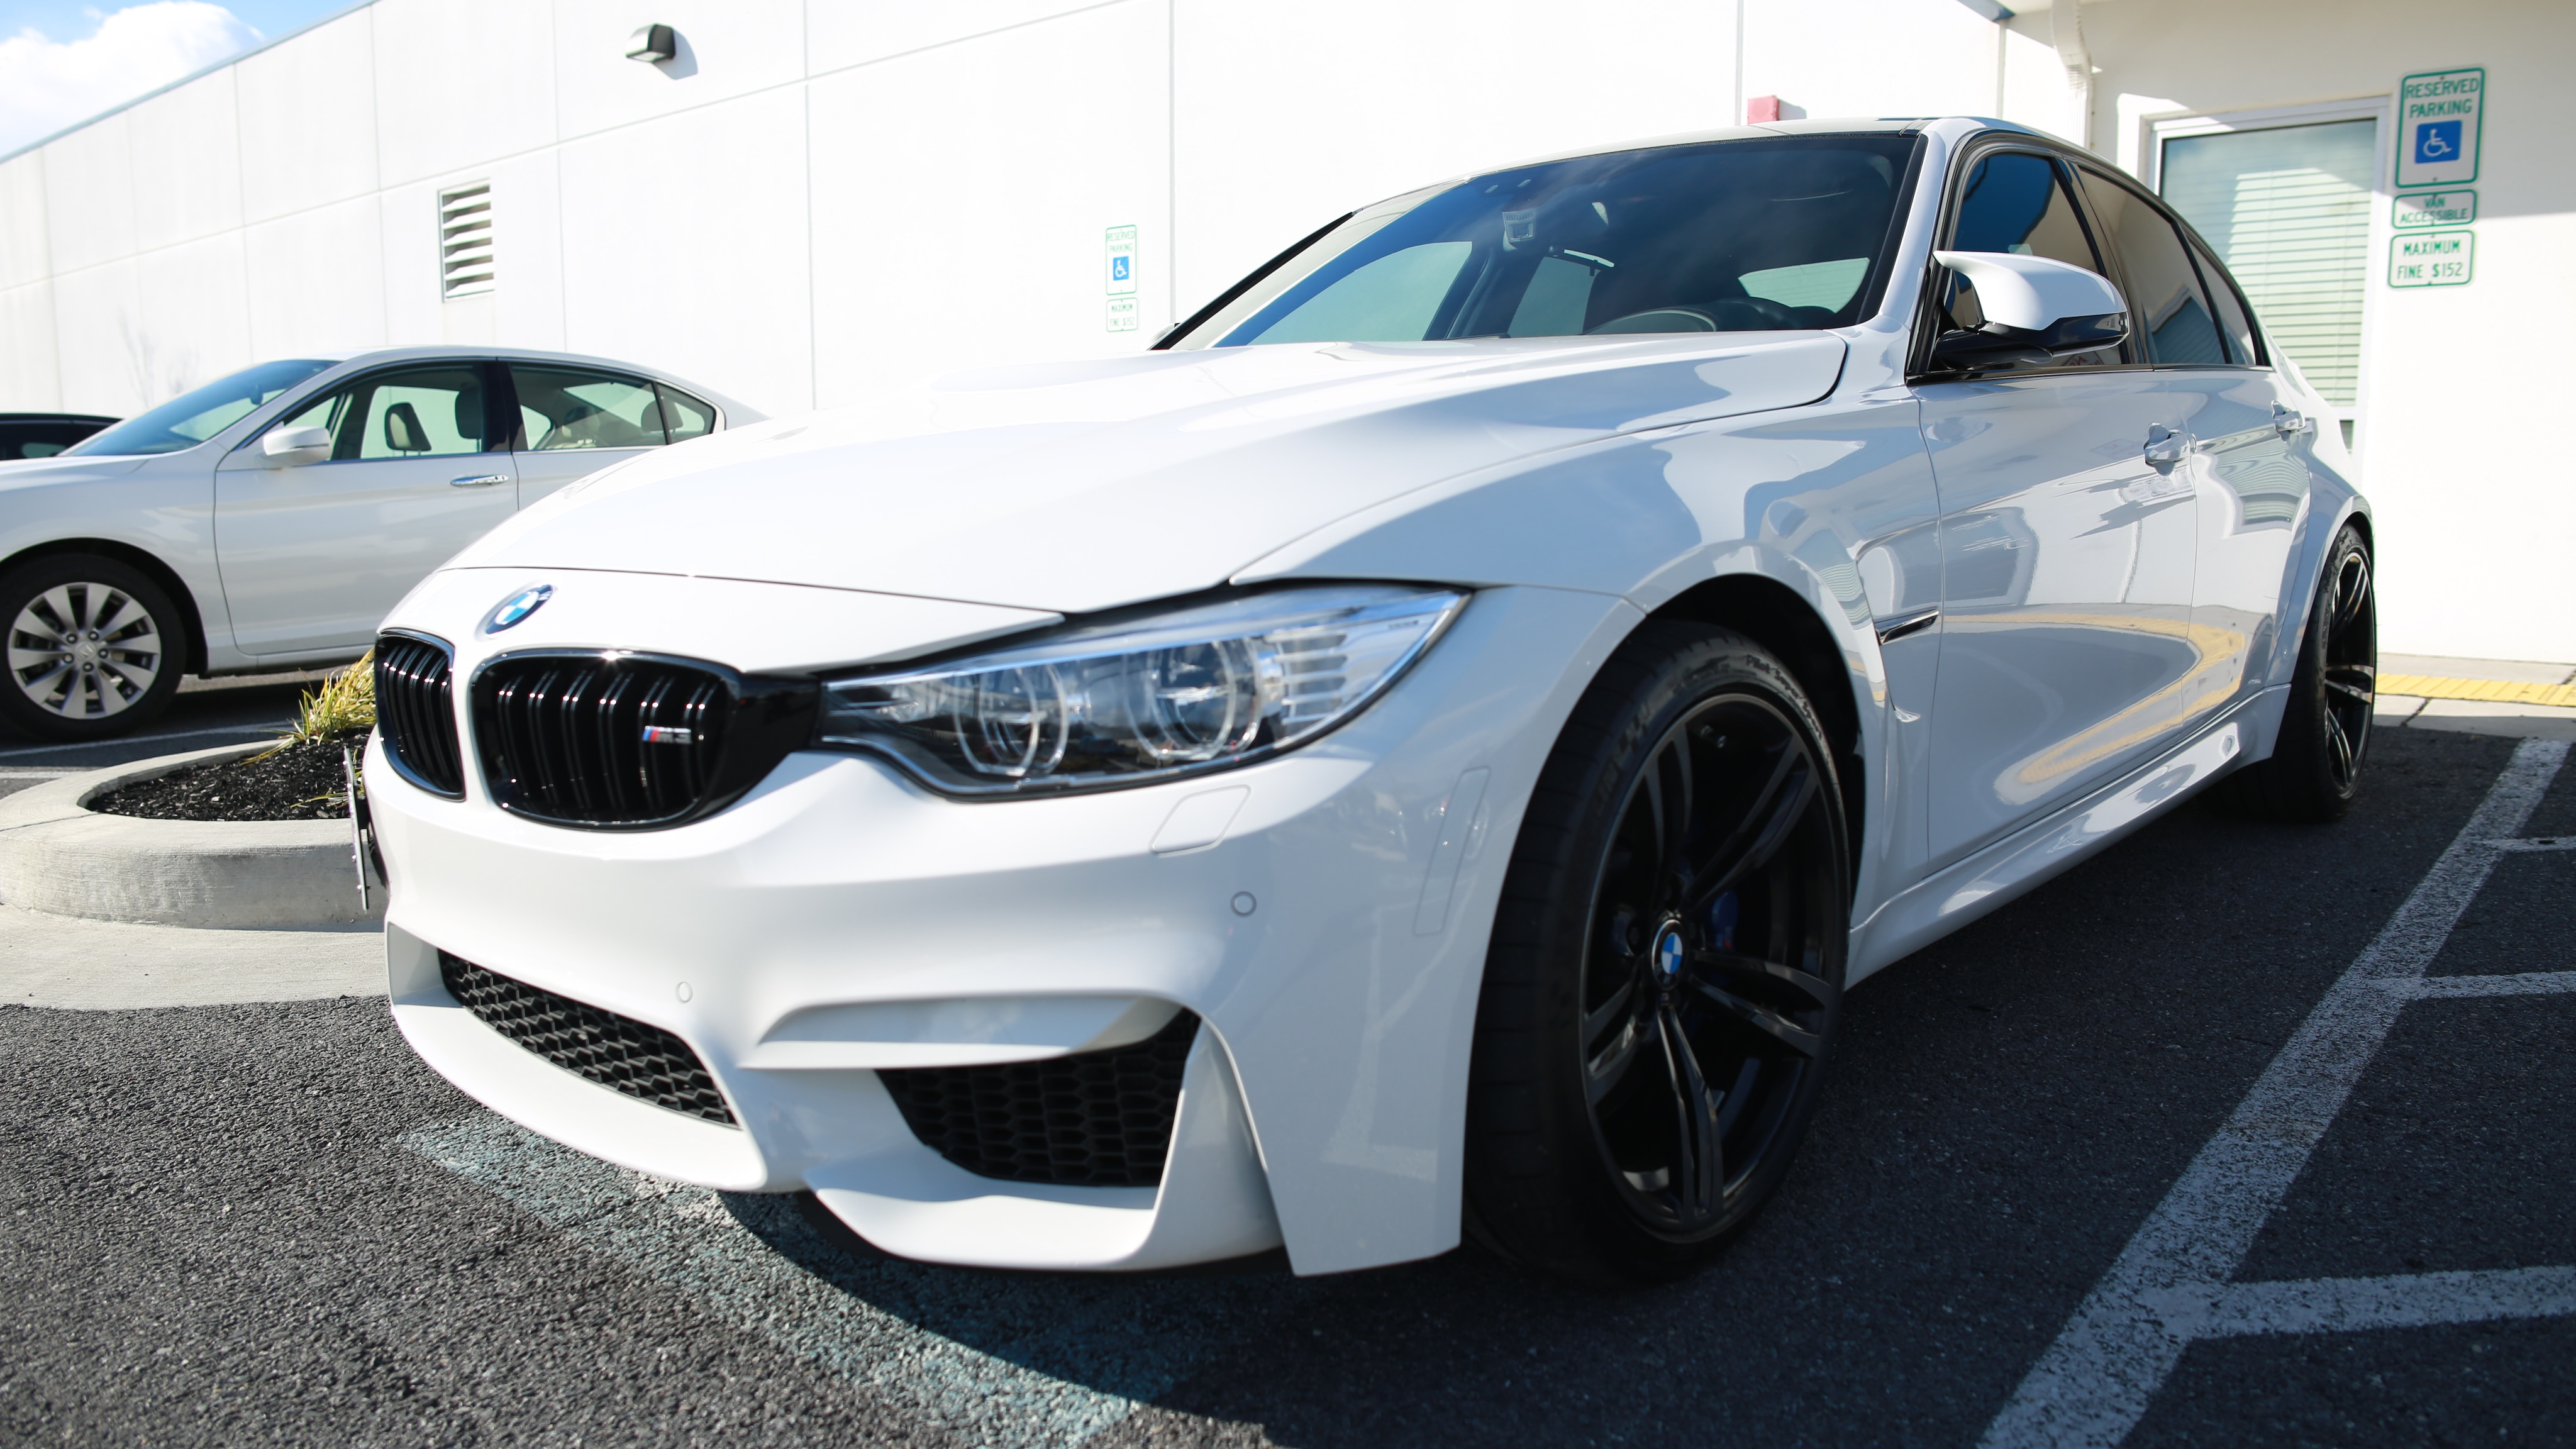 design bmw md fl reference to orlando in car s dealers img